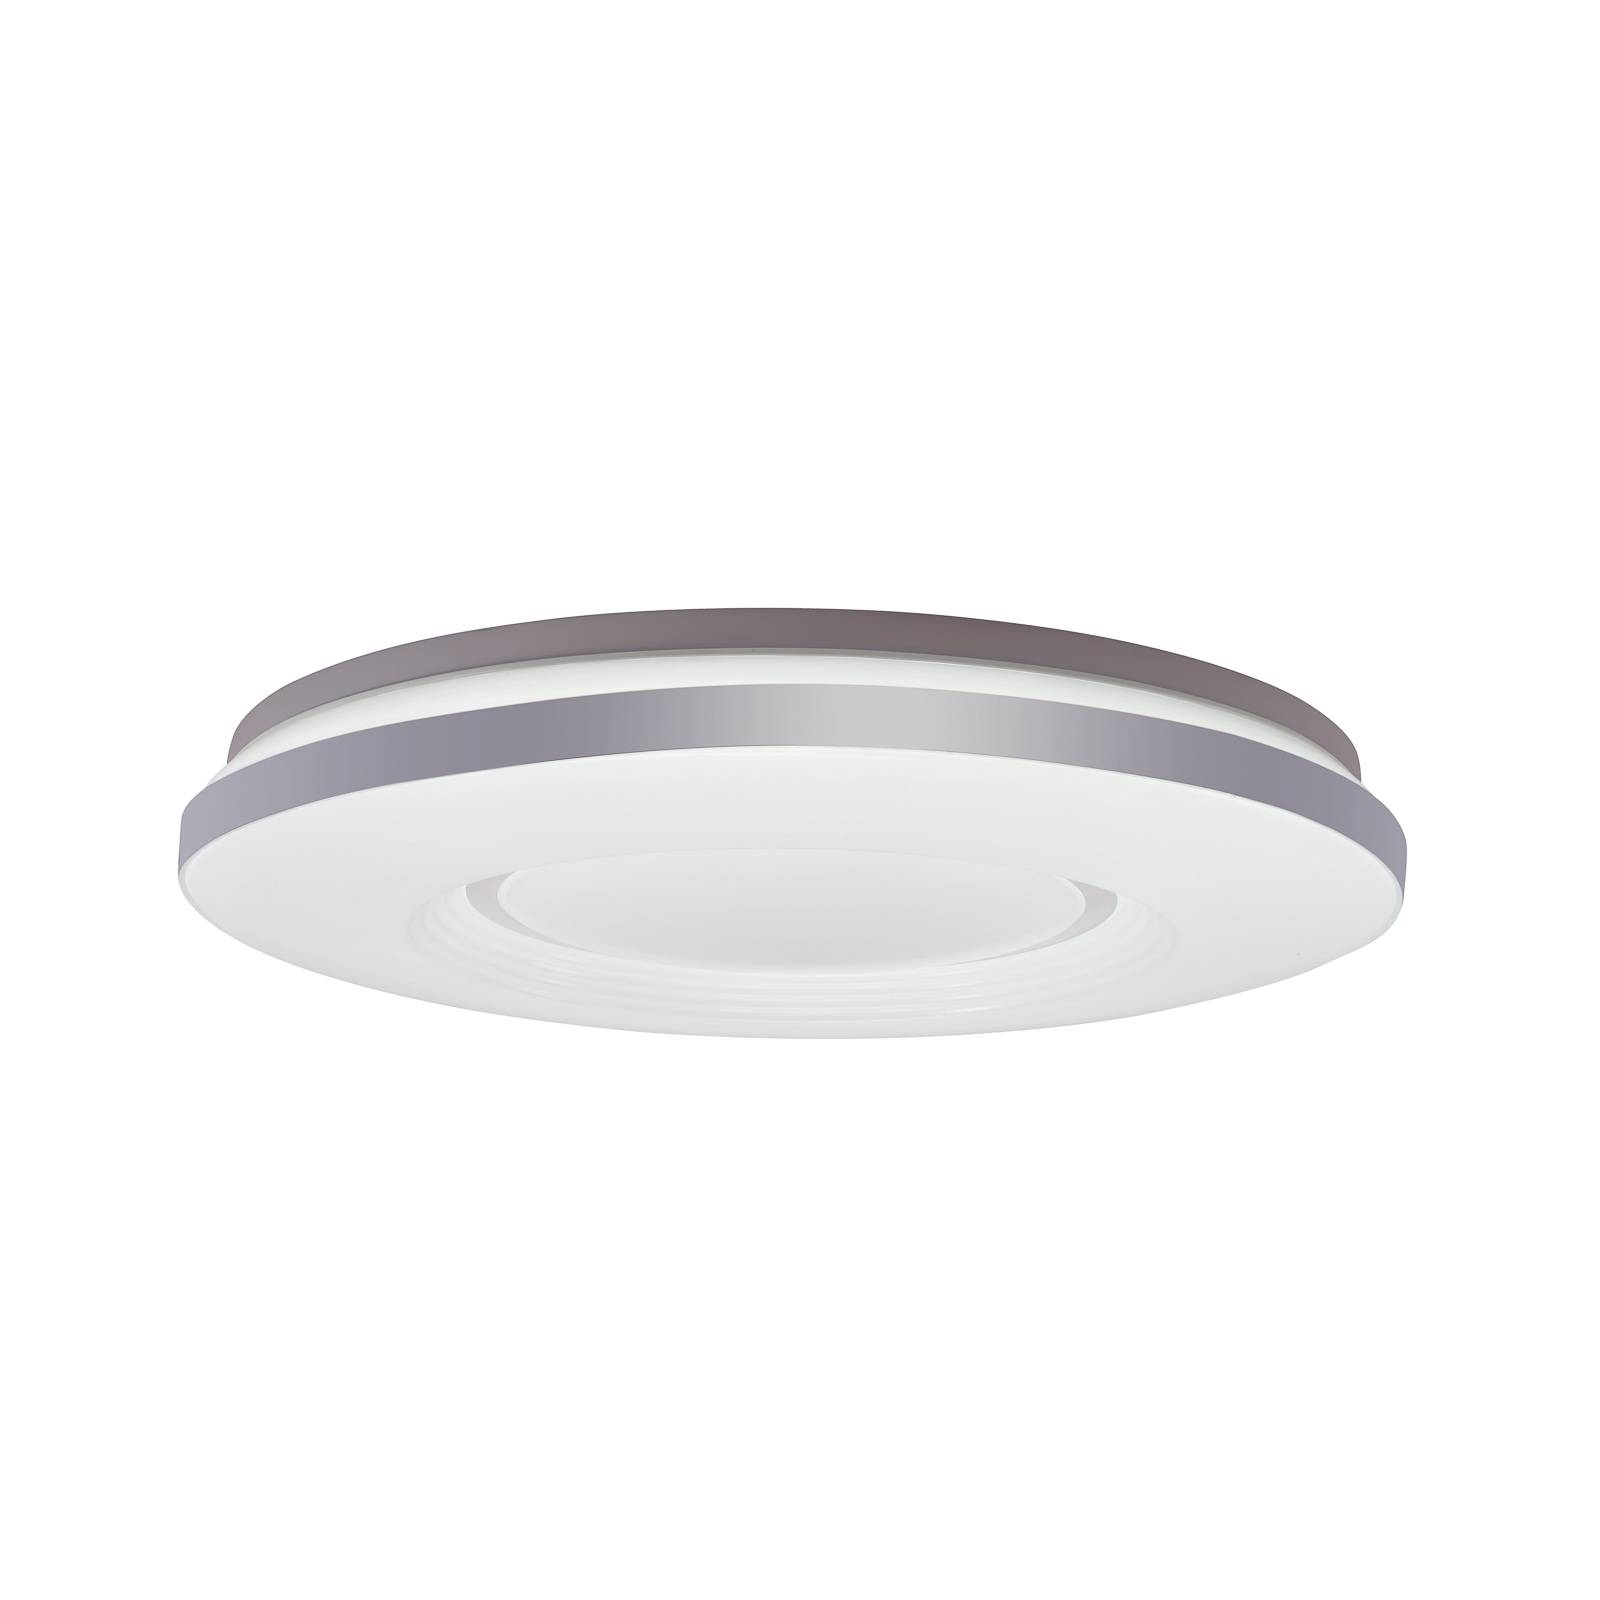 Lindby Robini LED-Deckenleuchte, CCT, dimmbar